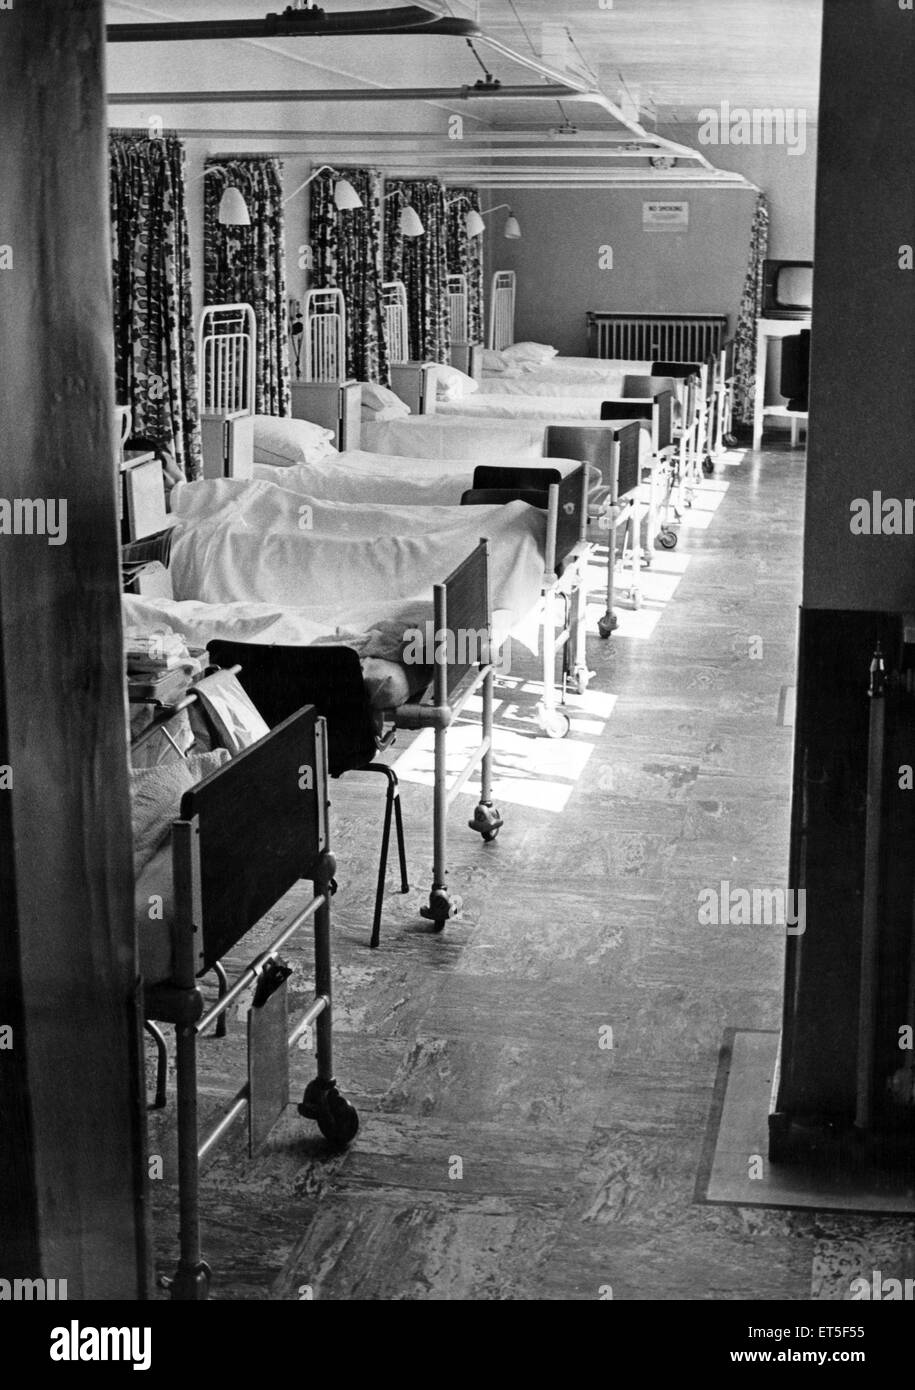 A ward in Preston Hospital, North Shields, Tyne and Wear. 19th August 1974. - Stock Image